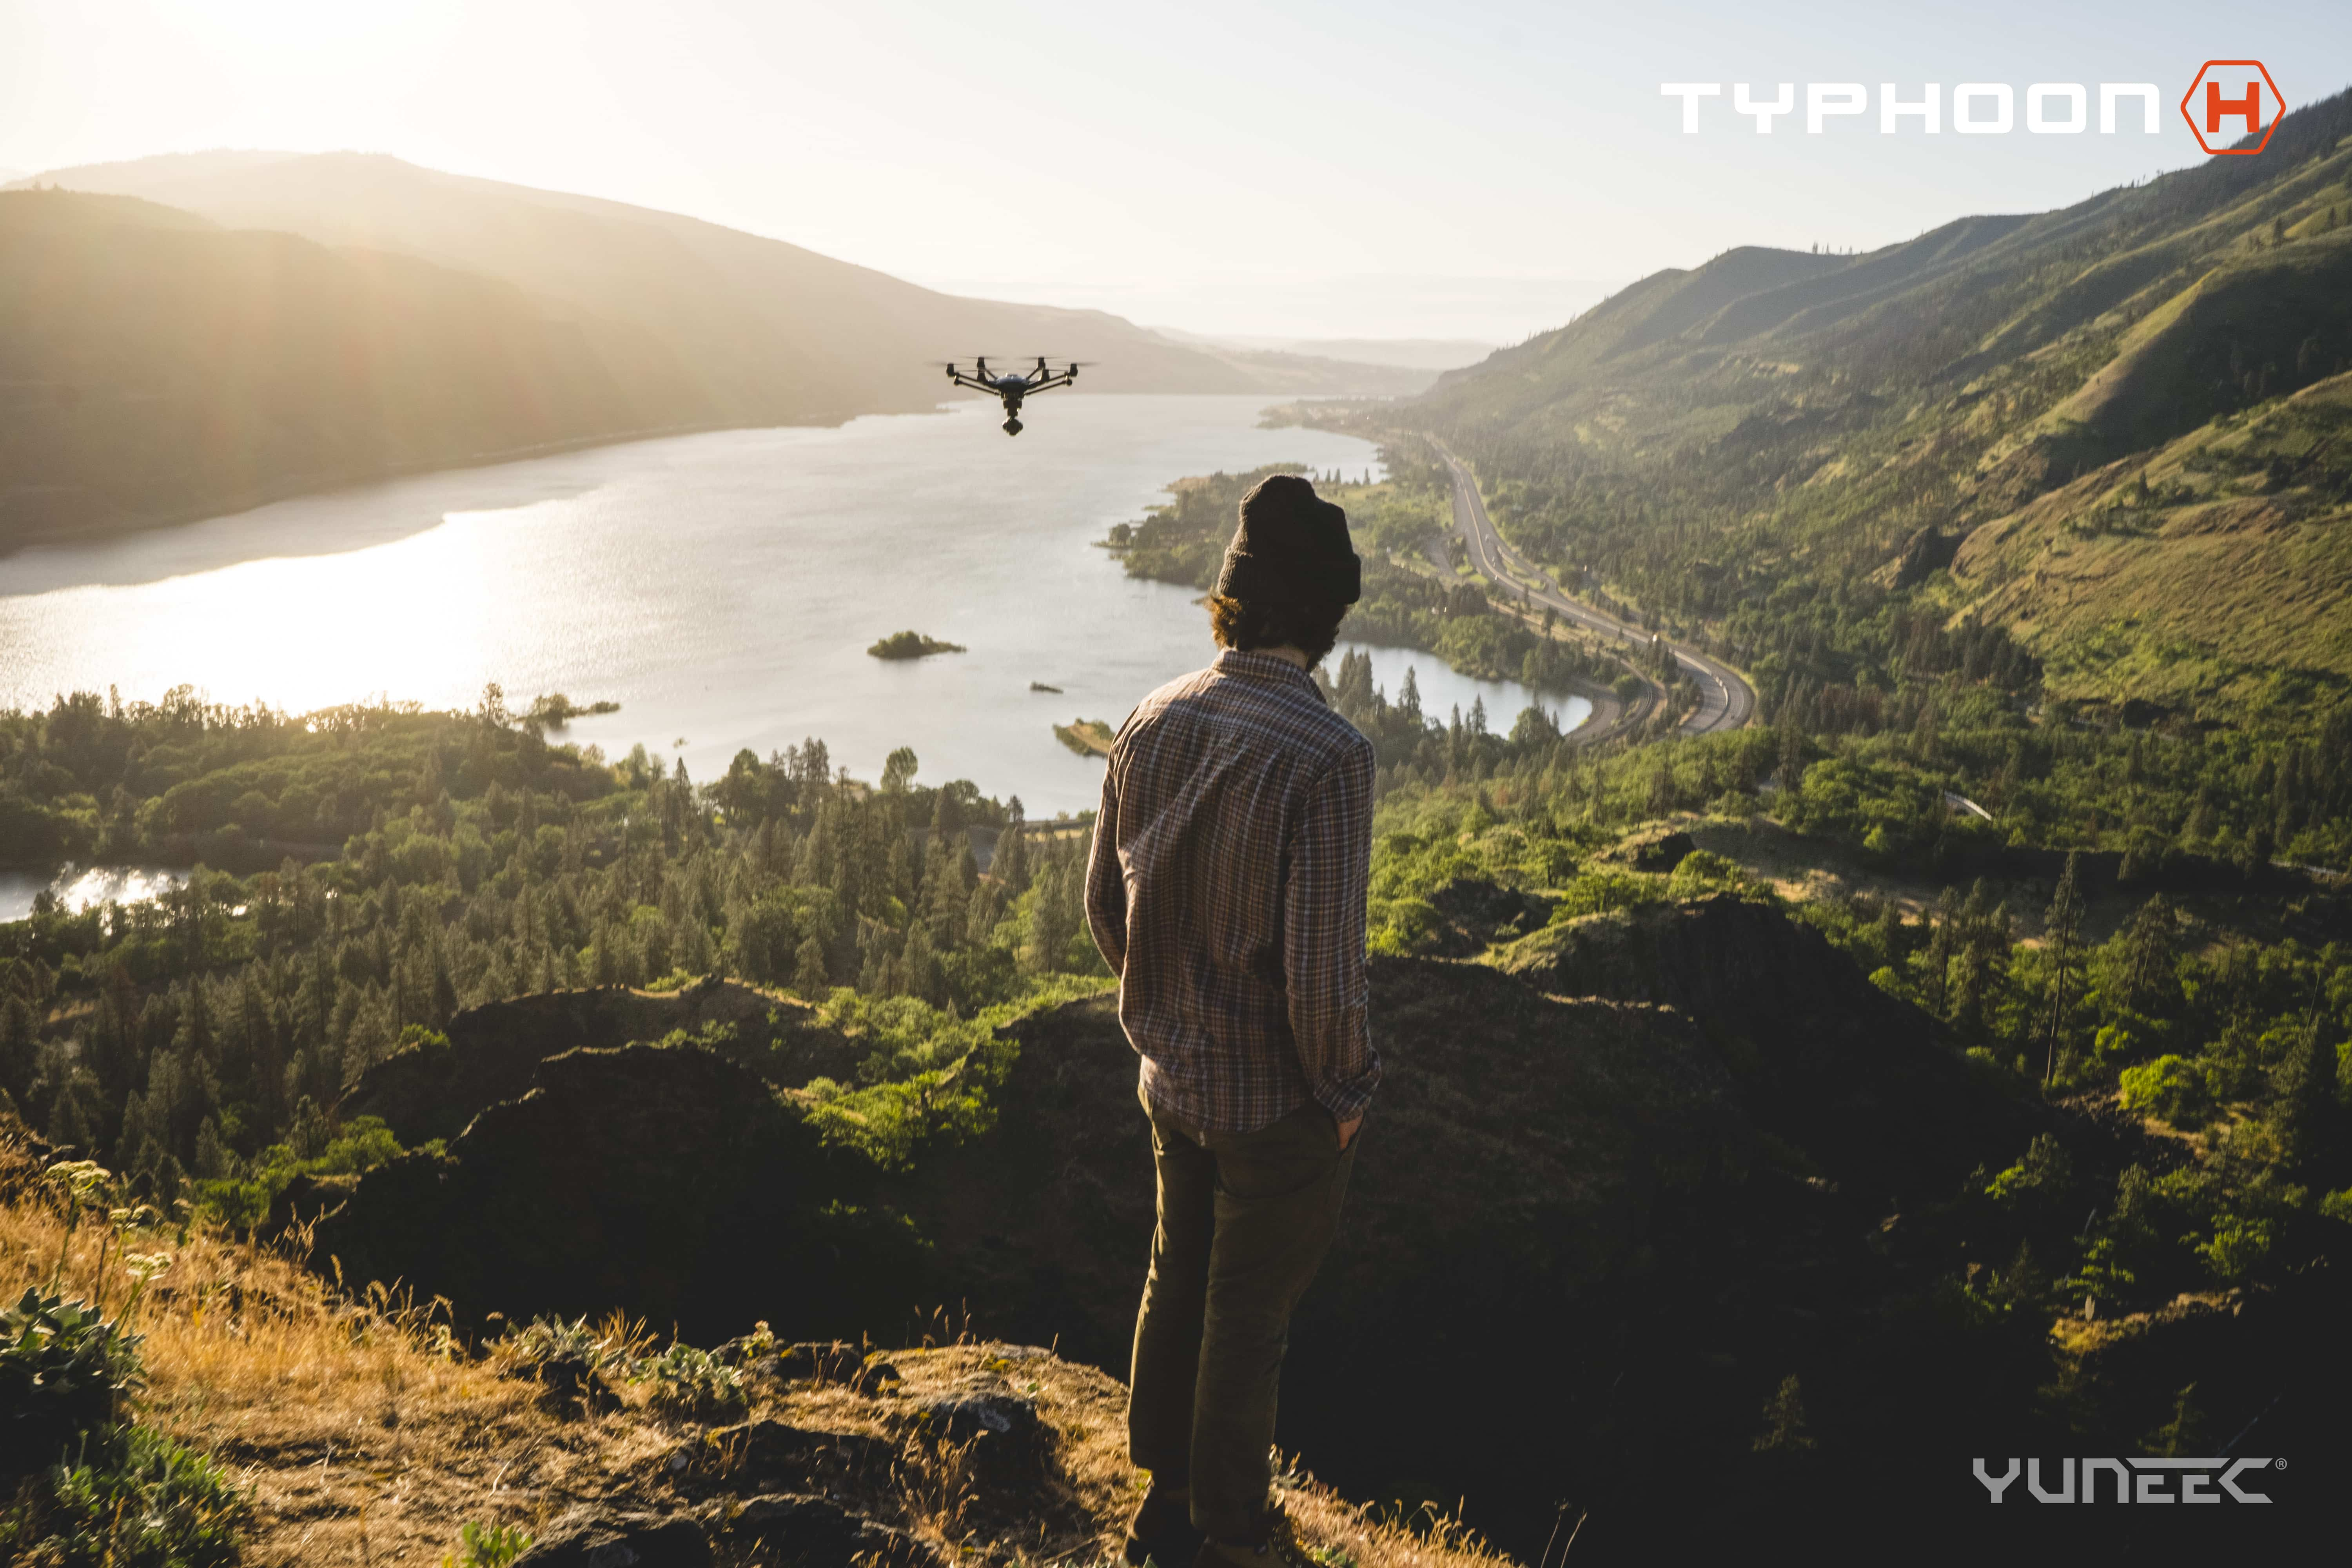 YUNEEC Europe – Unmanned Aerial Vehicles